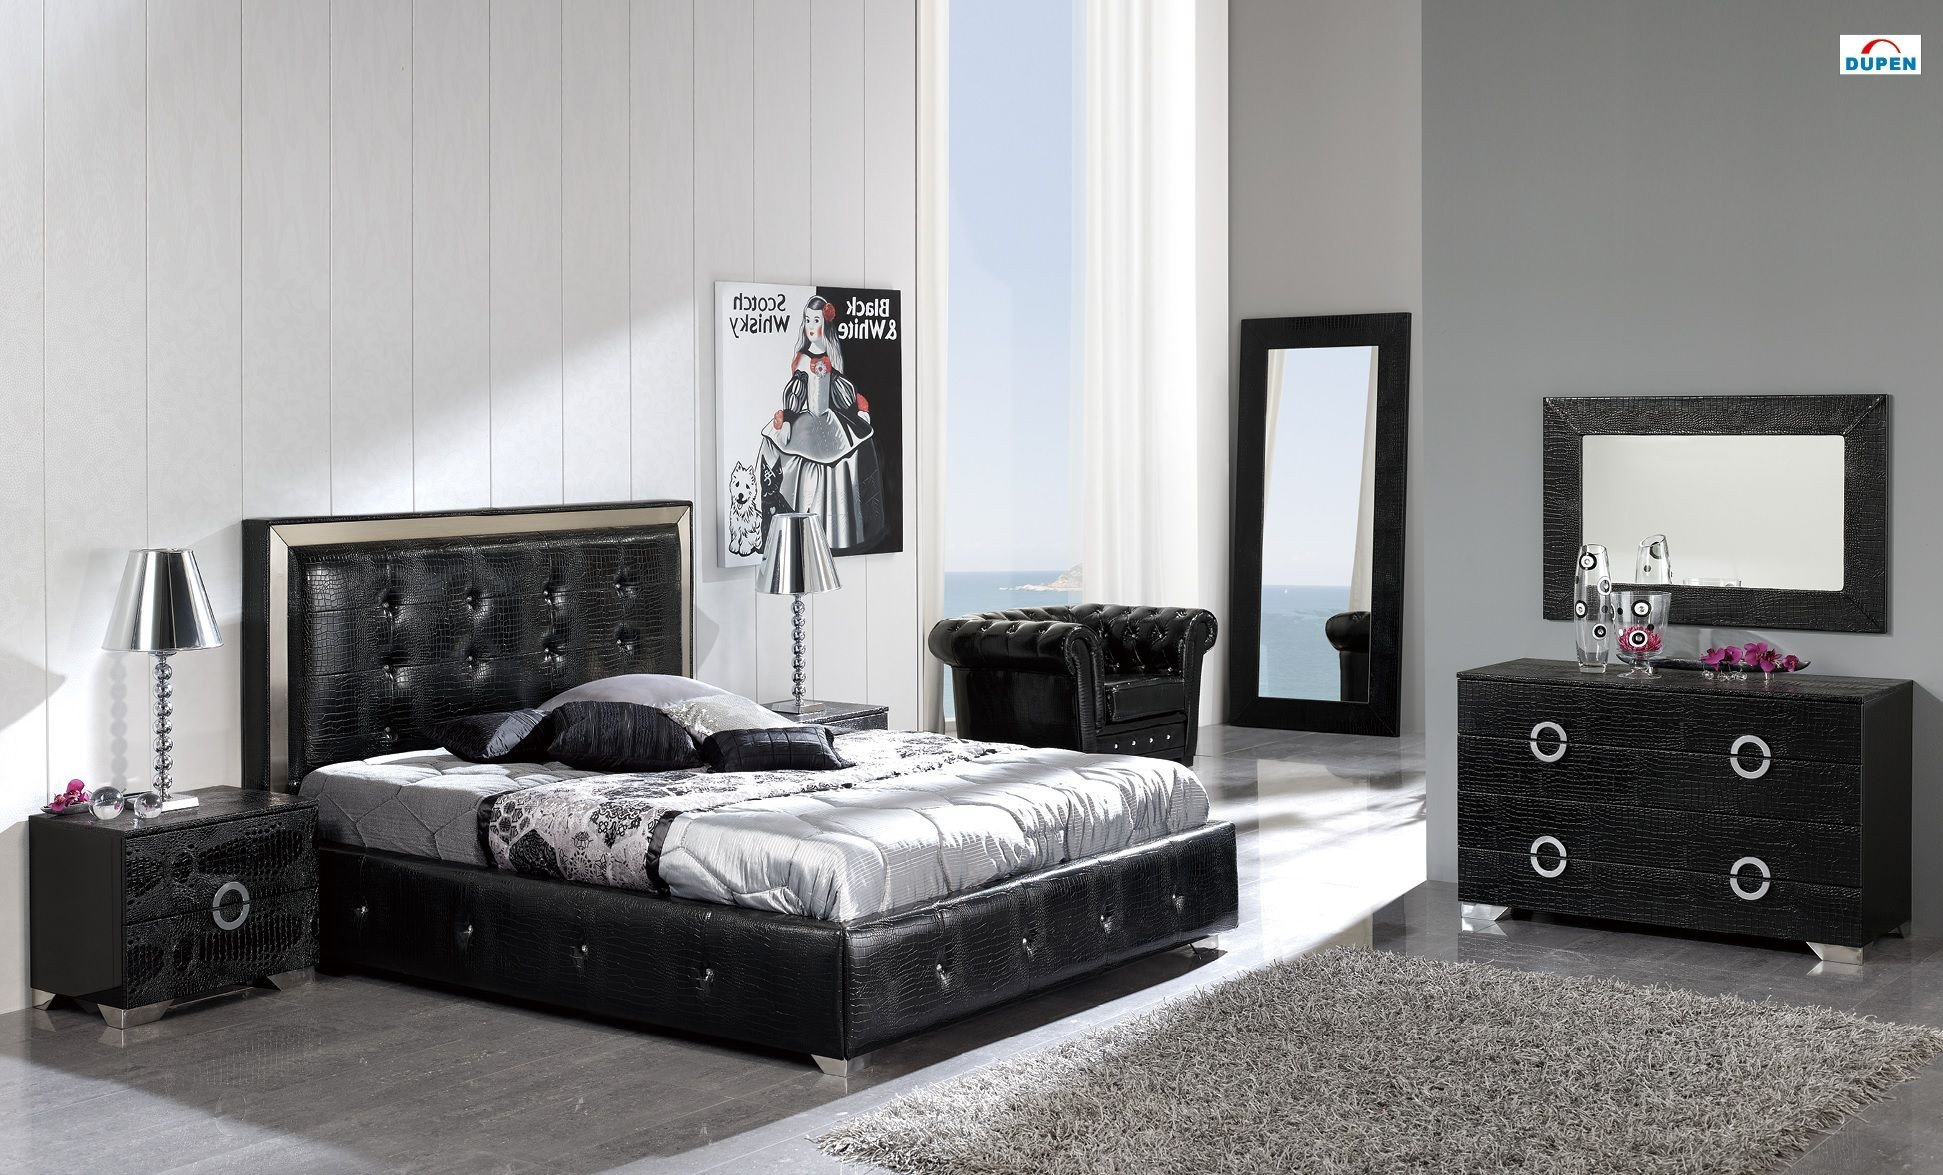 Black Full Size Bedroom Set Fresh Coco Bedroom Set In Black by Dupen Made In Spain